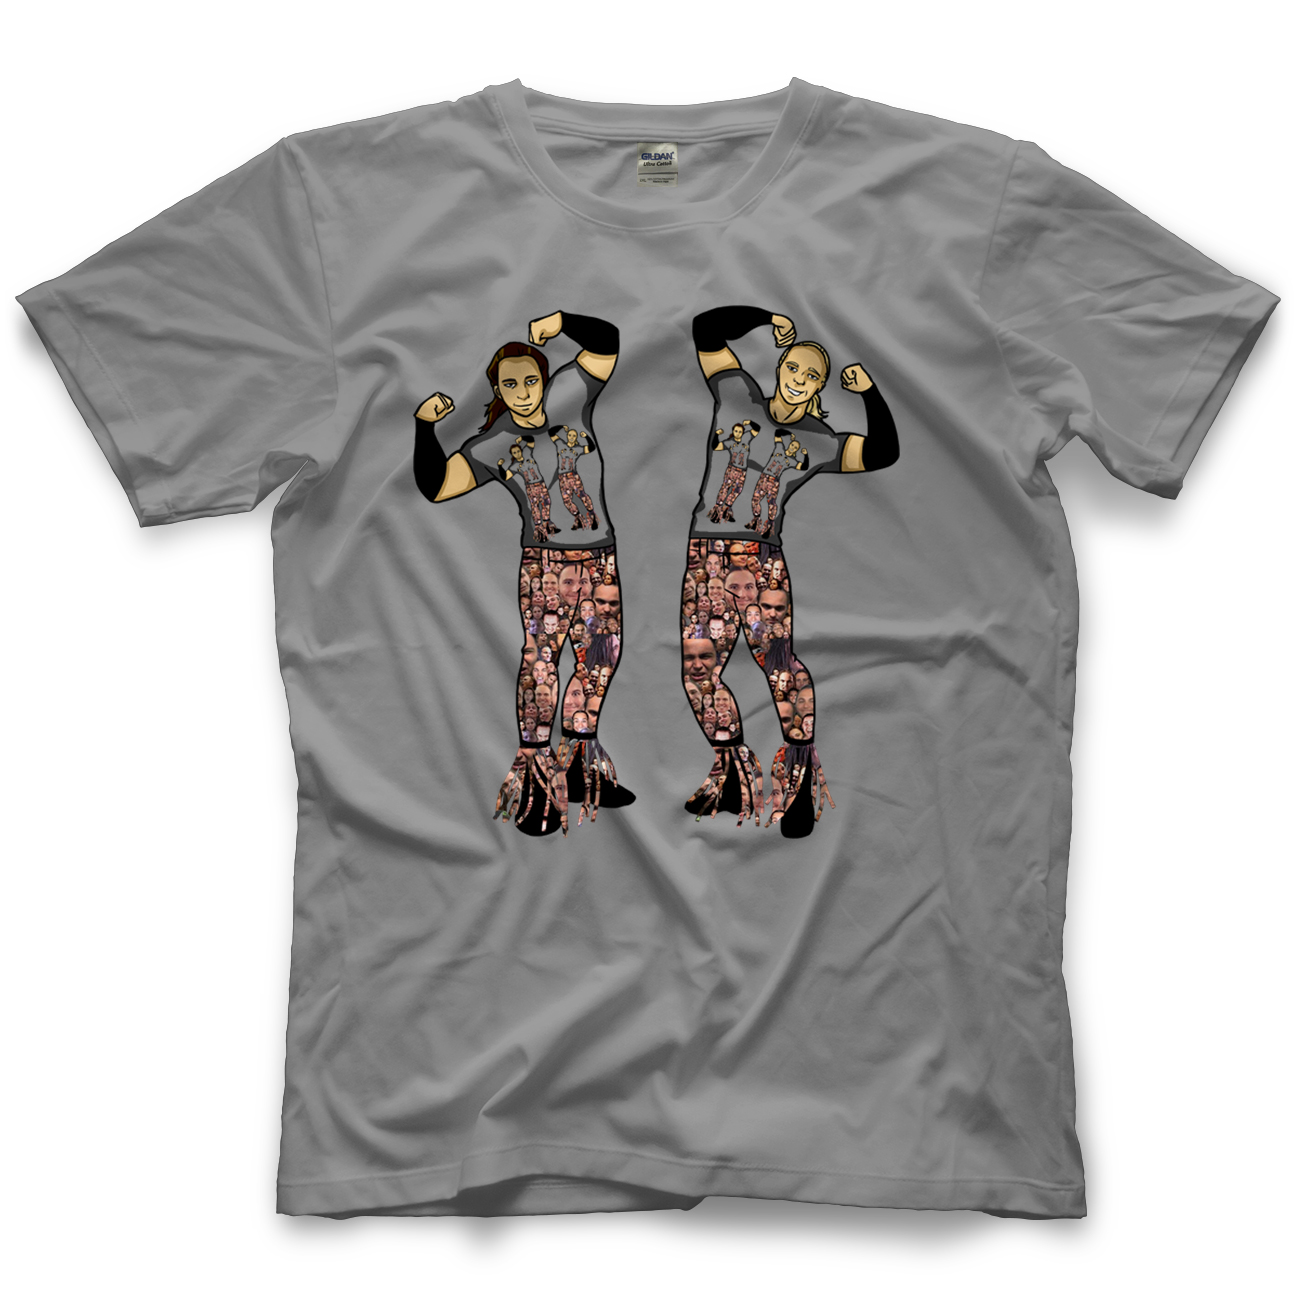 The Young Bucks Bucks Shirt Within A Shirt T-shirt